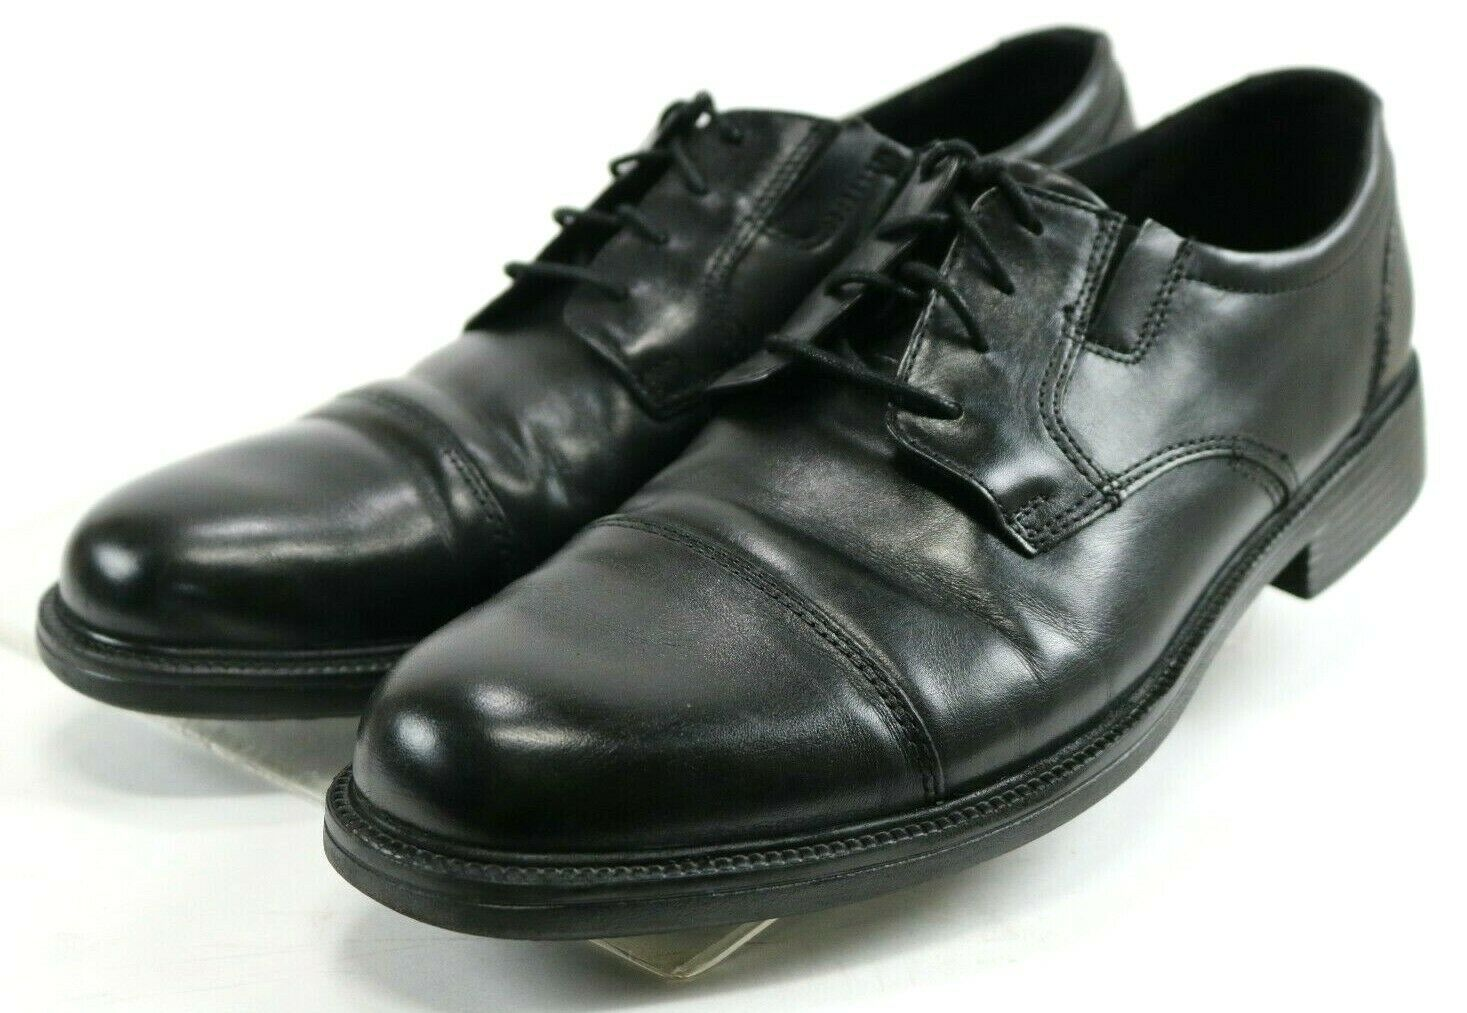 Bostonian Bardwell Limit  120 Men's Cap Toe Dress shoes Size 11 Leather Black